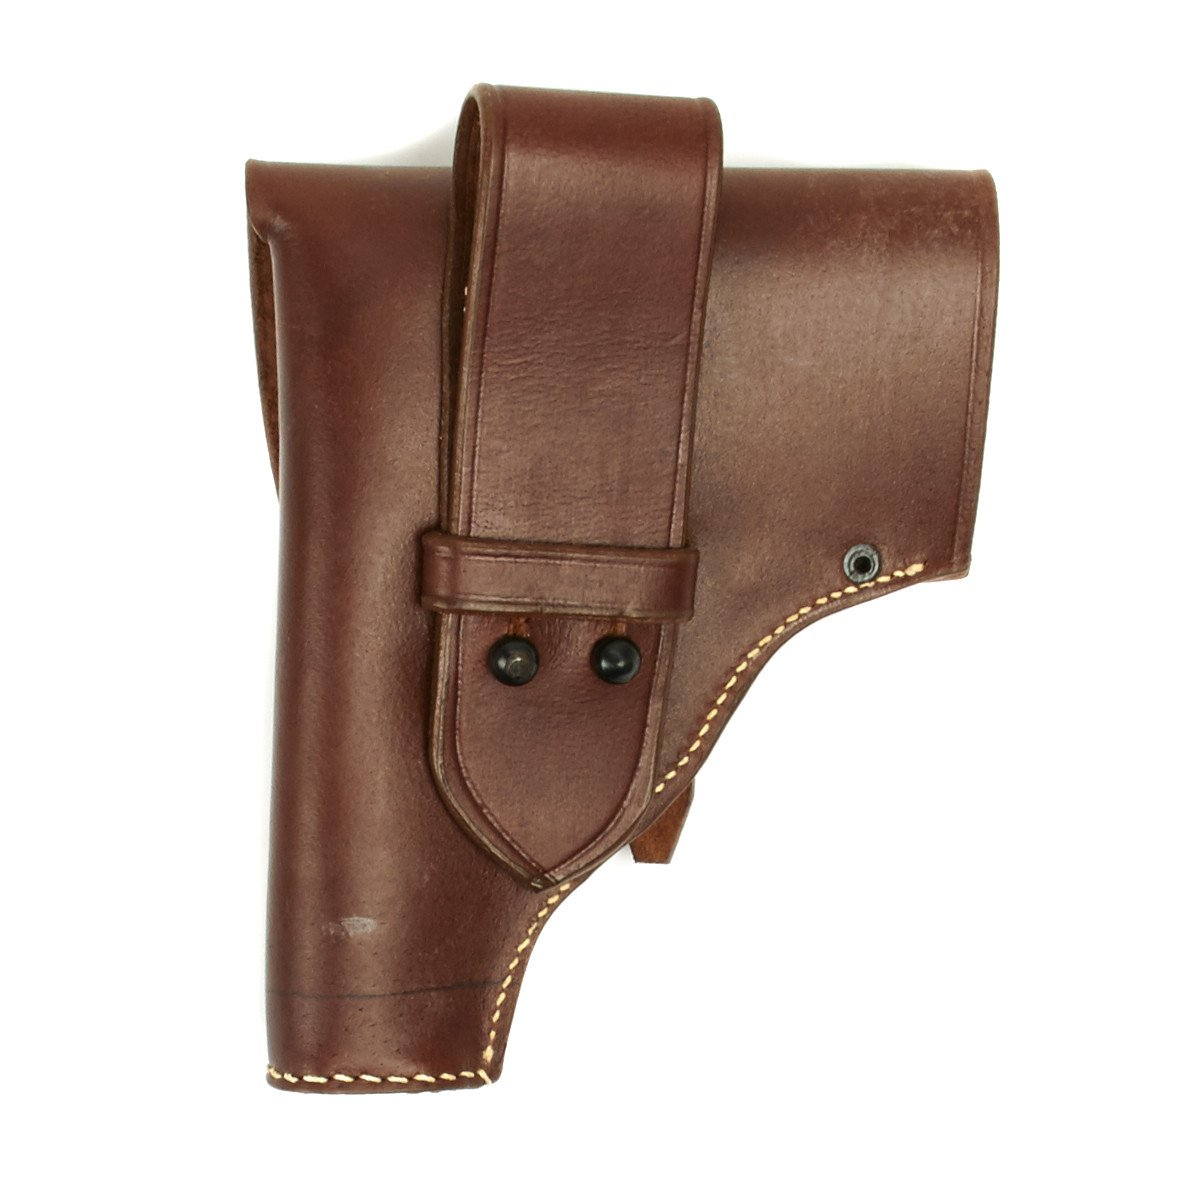 Italian WWII Beretta M1934 Pistol Leather Holster - Model ...